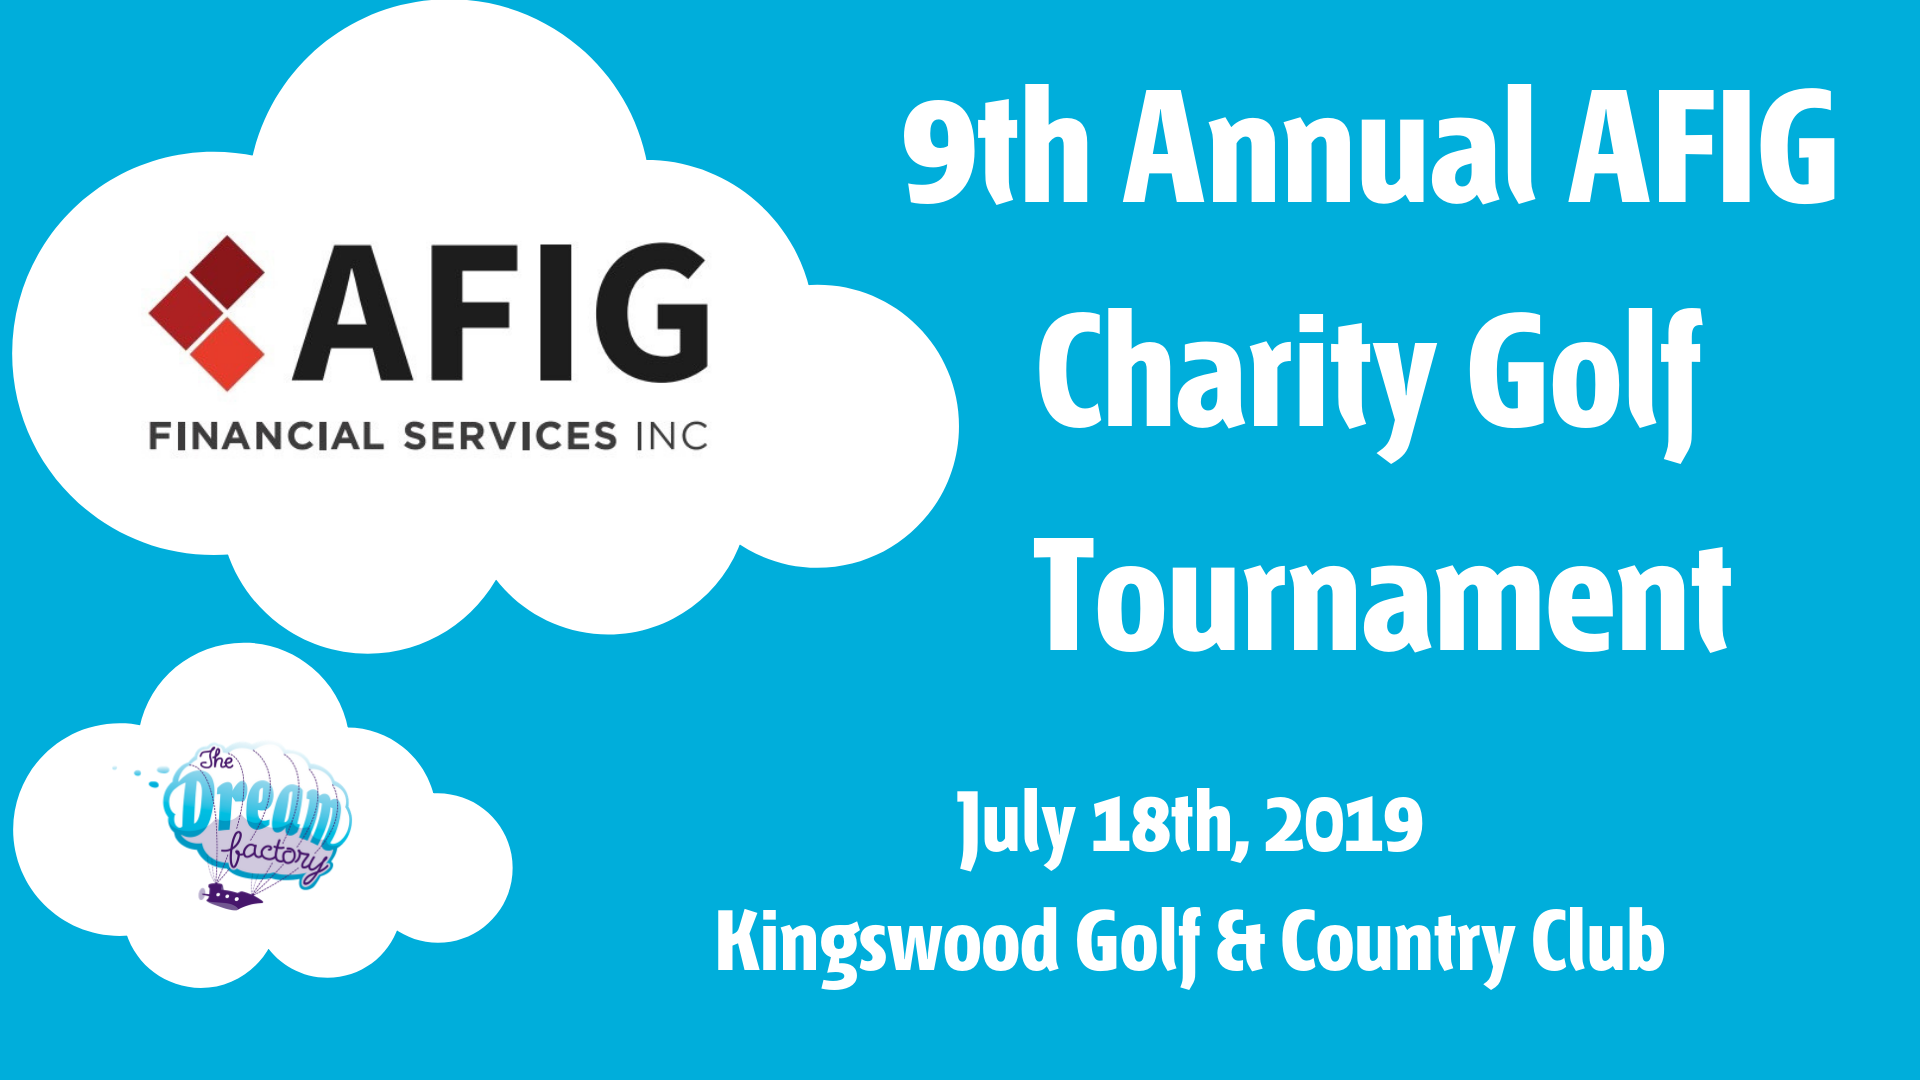 9th Annual AFIG Charity Golf Tournament.png